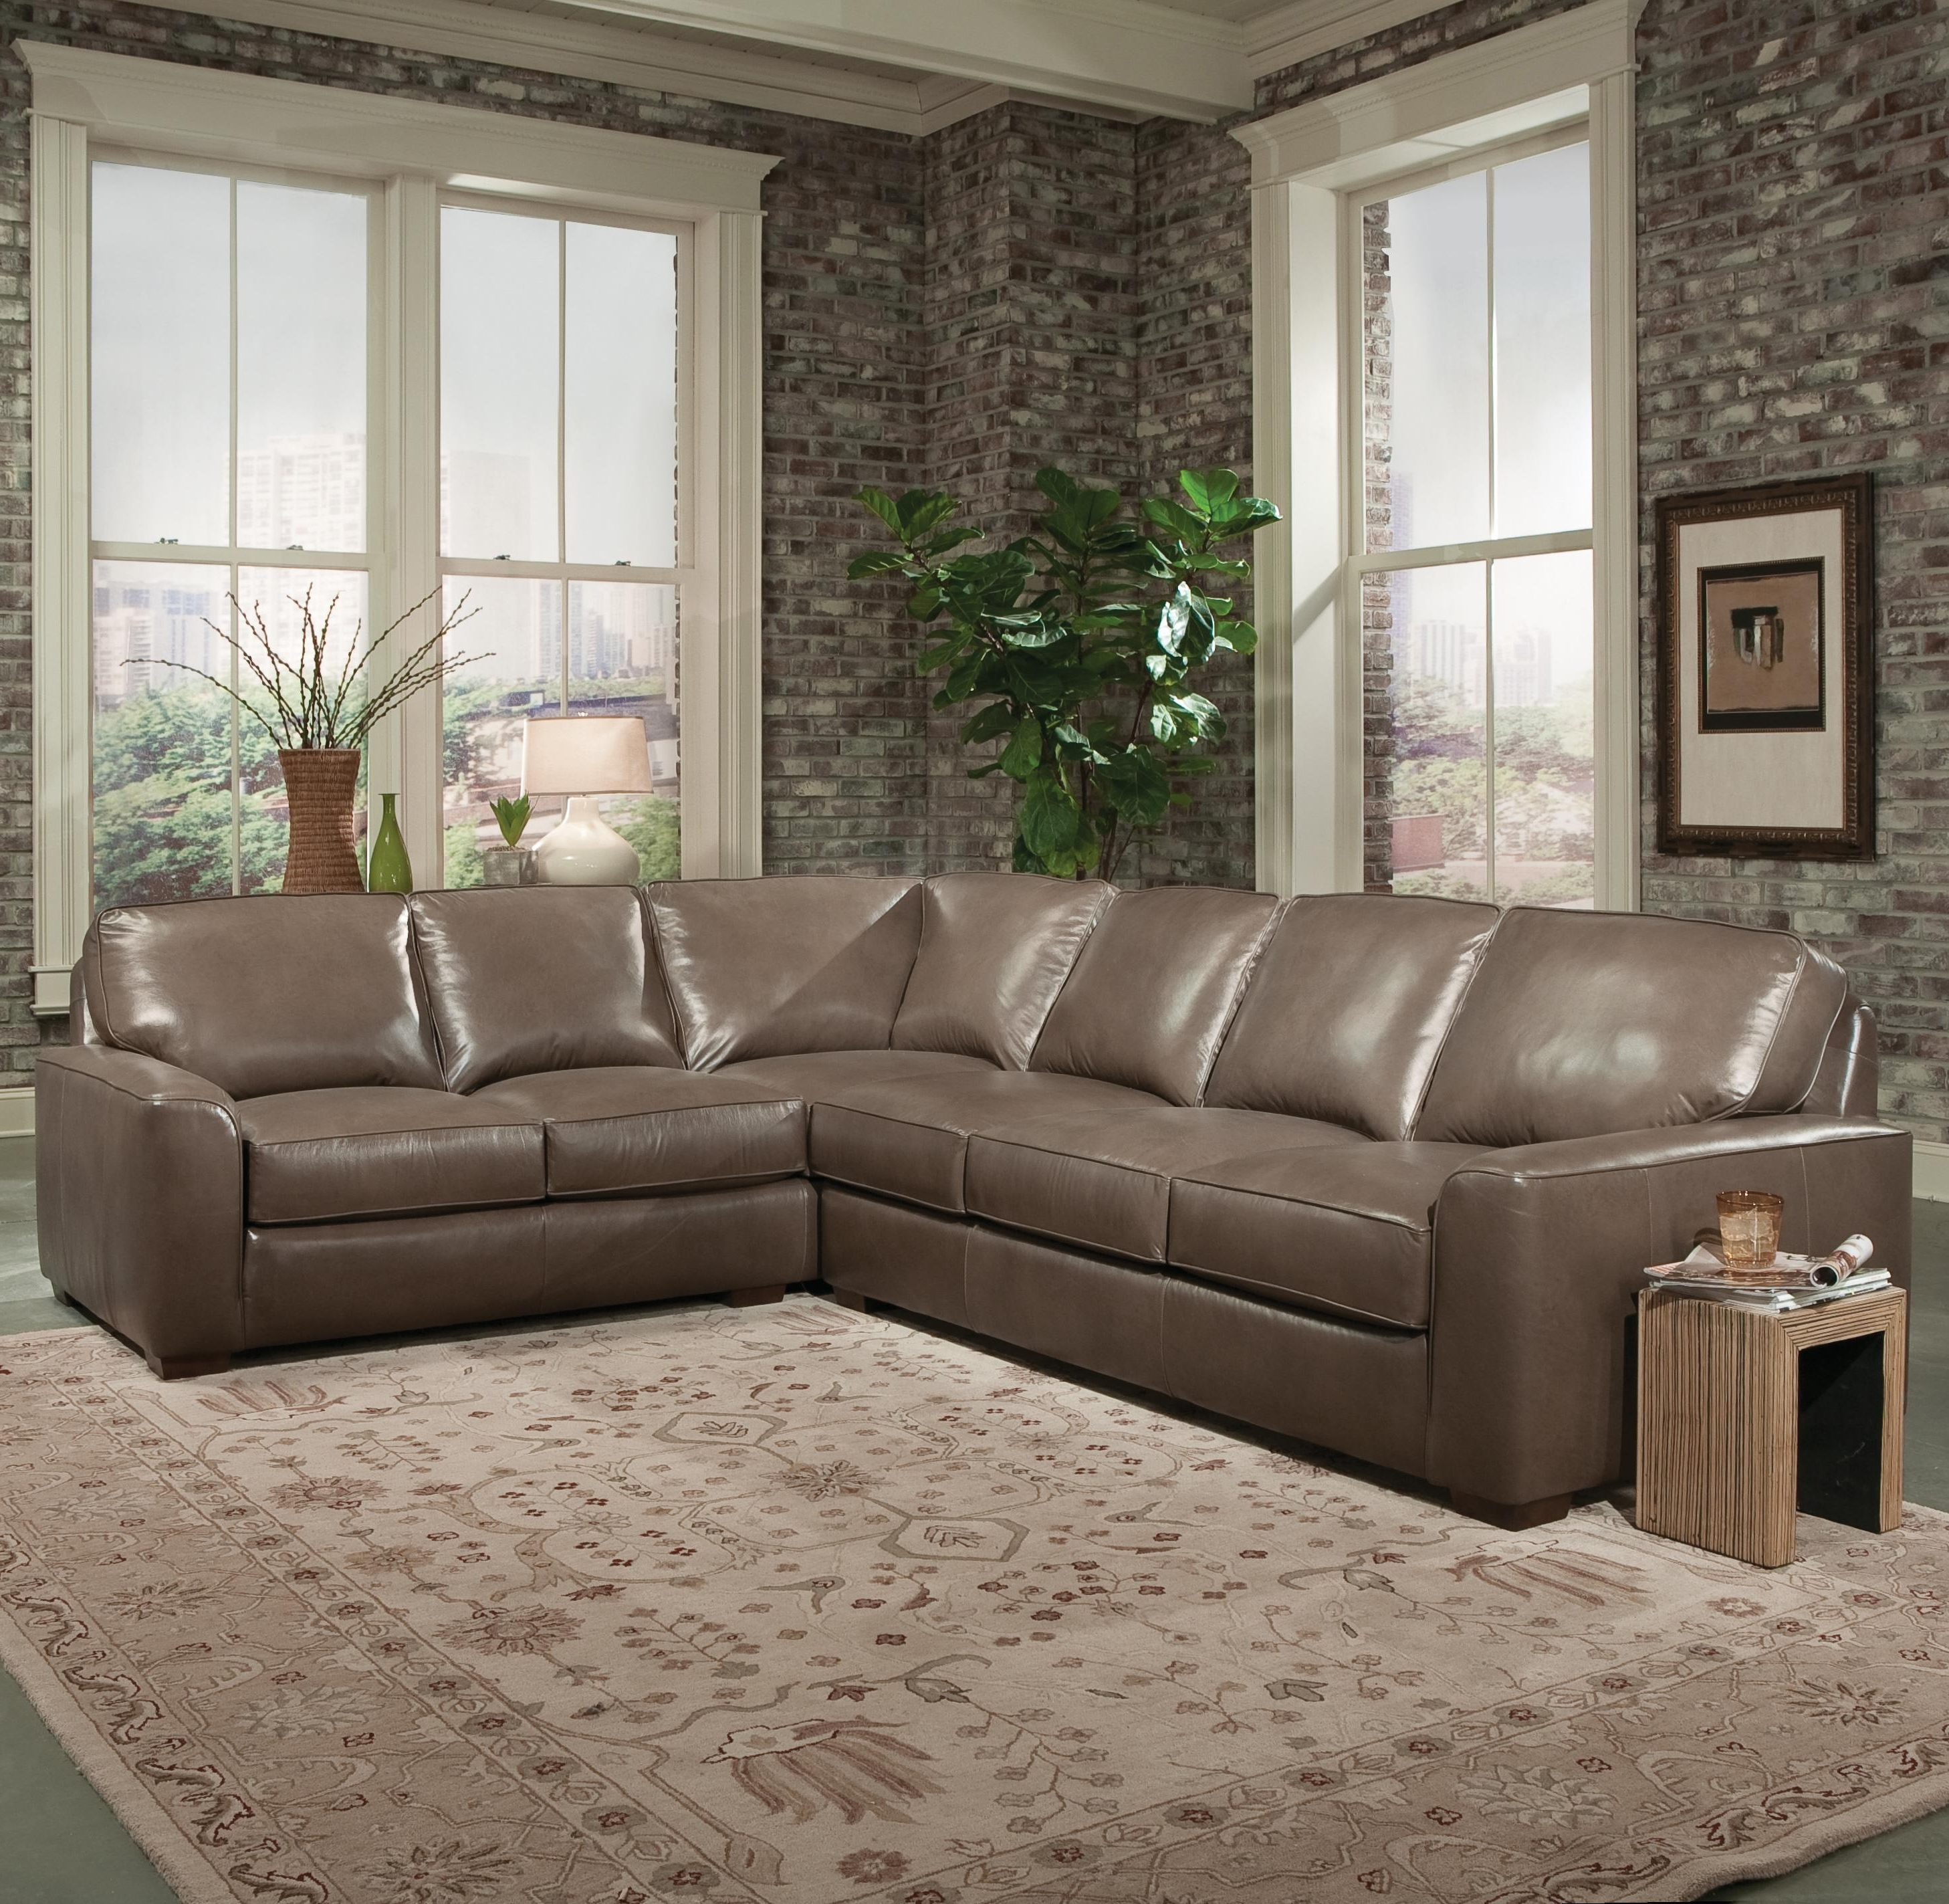 Ivan Smith Sectional Sofas Within Latest Furniture : Amazing Darvin Furniture Outlet Fresh Ivan Smith (View 12 of 15)